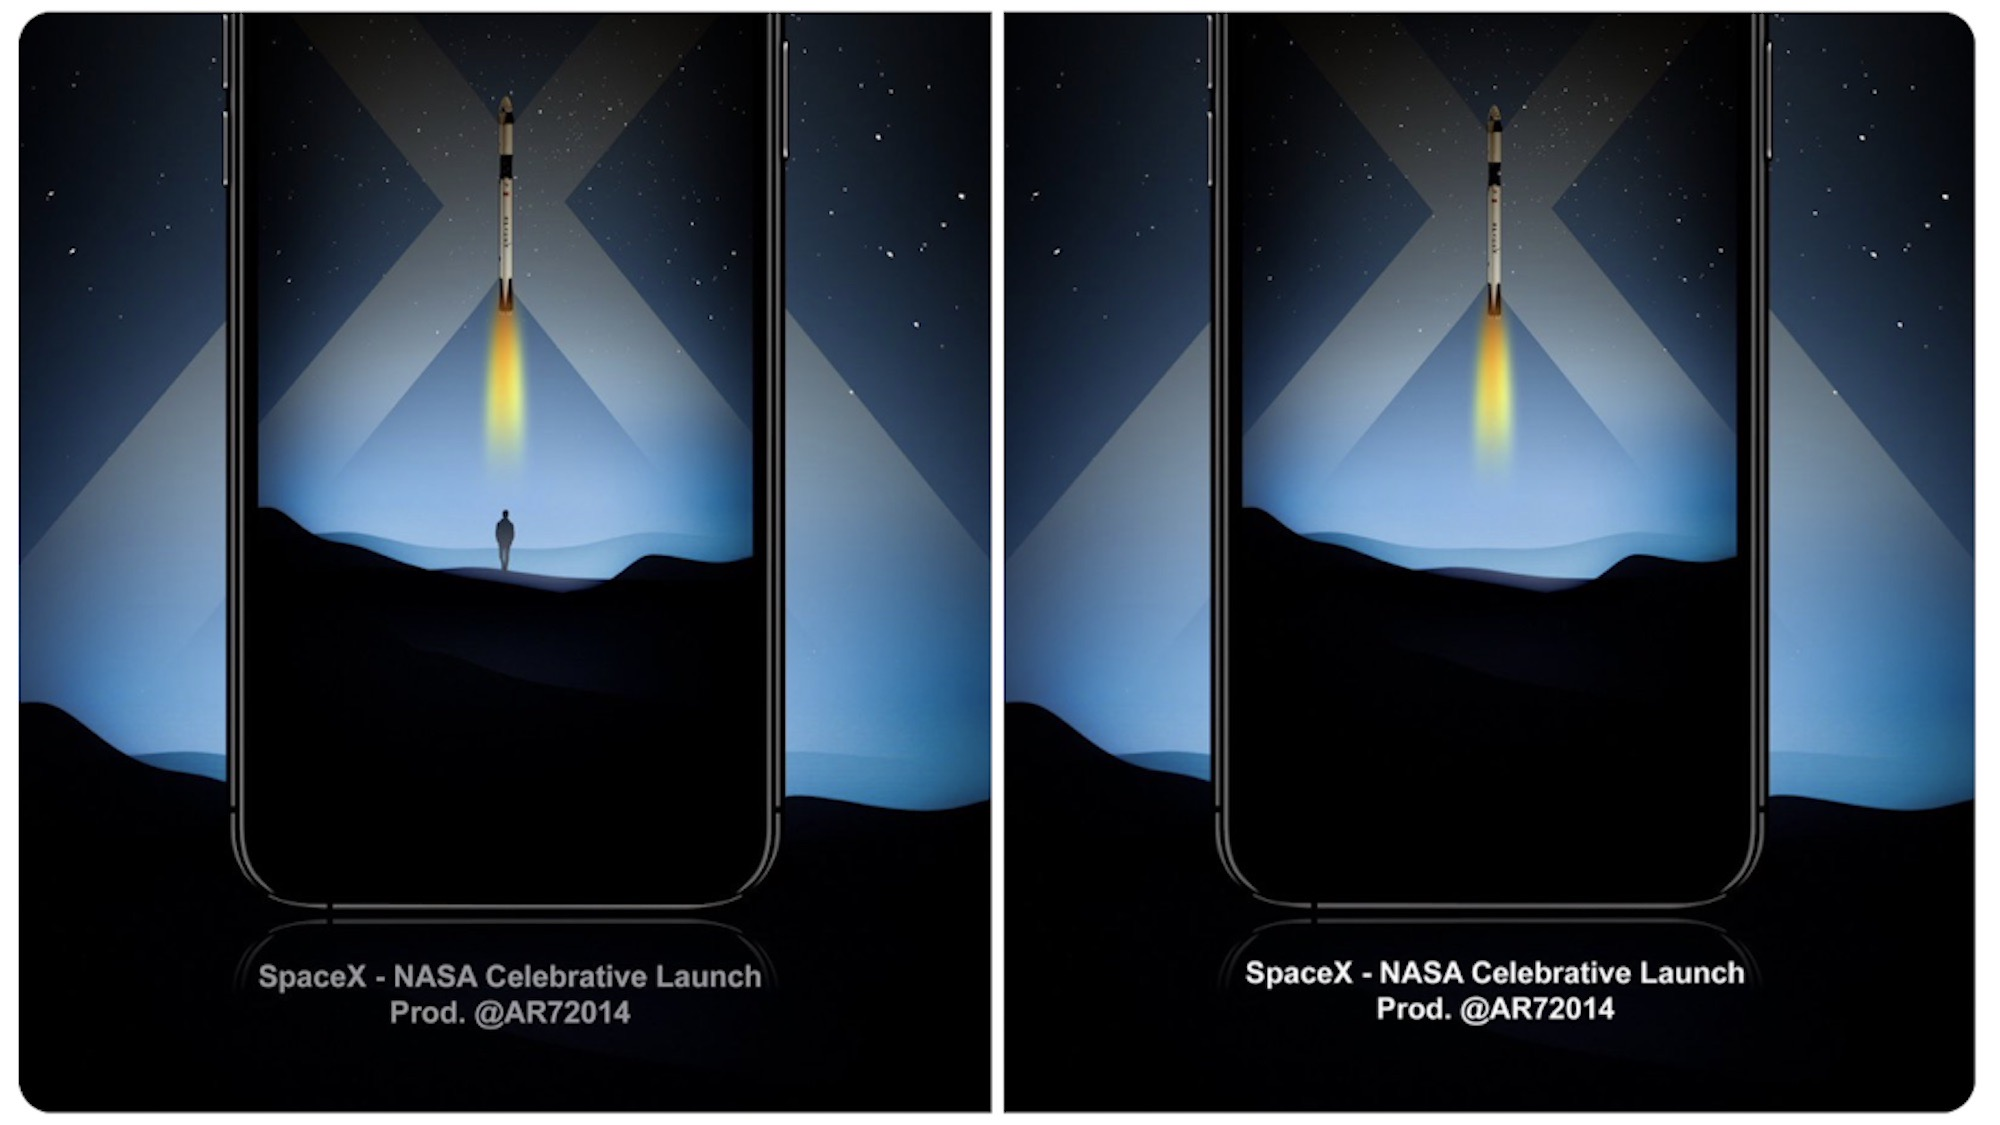 iPhone wallpapers from designer 'AR7' celebrate historic SpaceX NASA astronaut launch